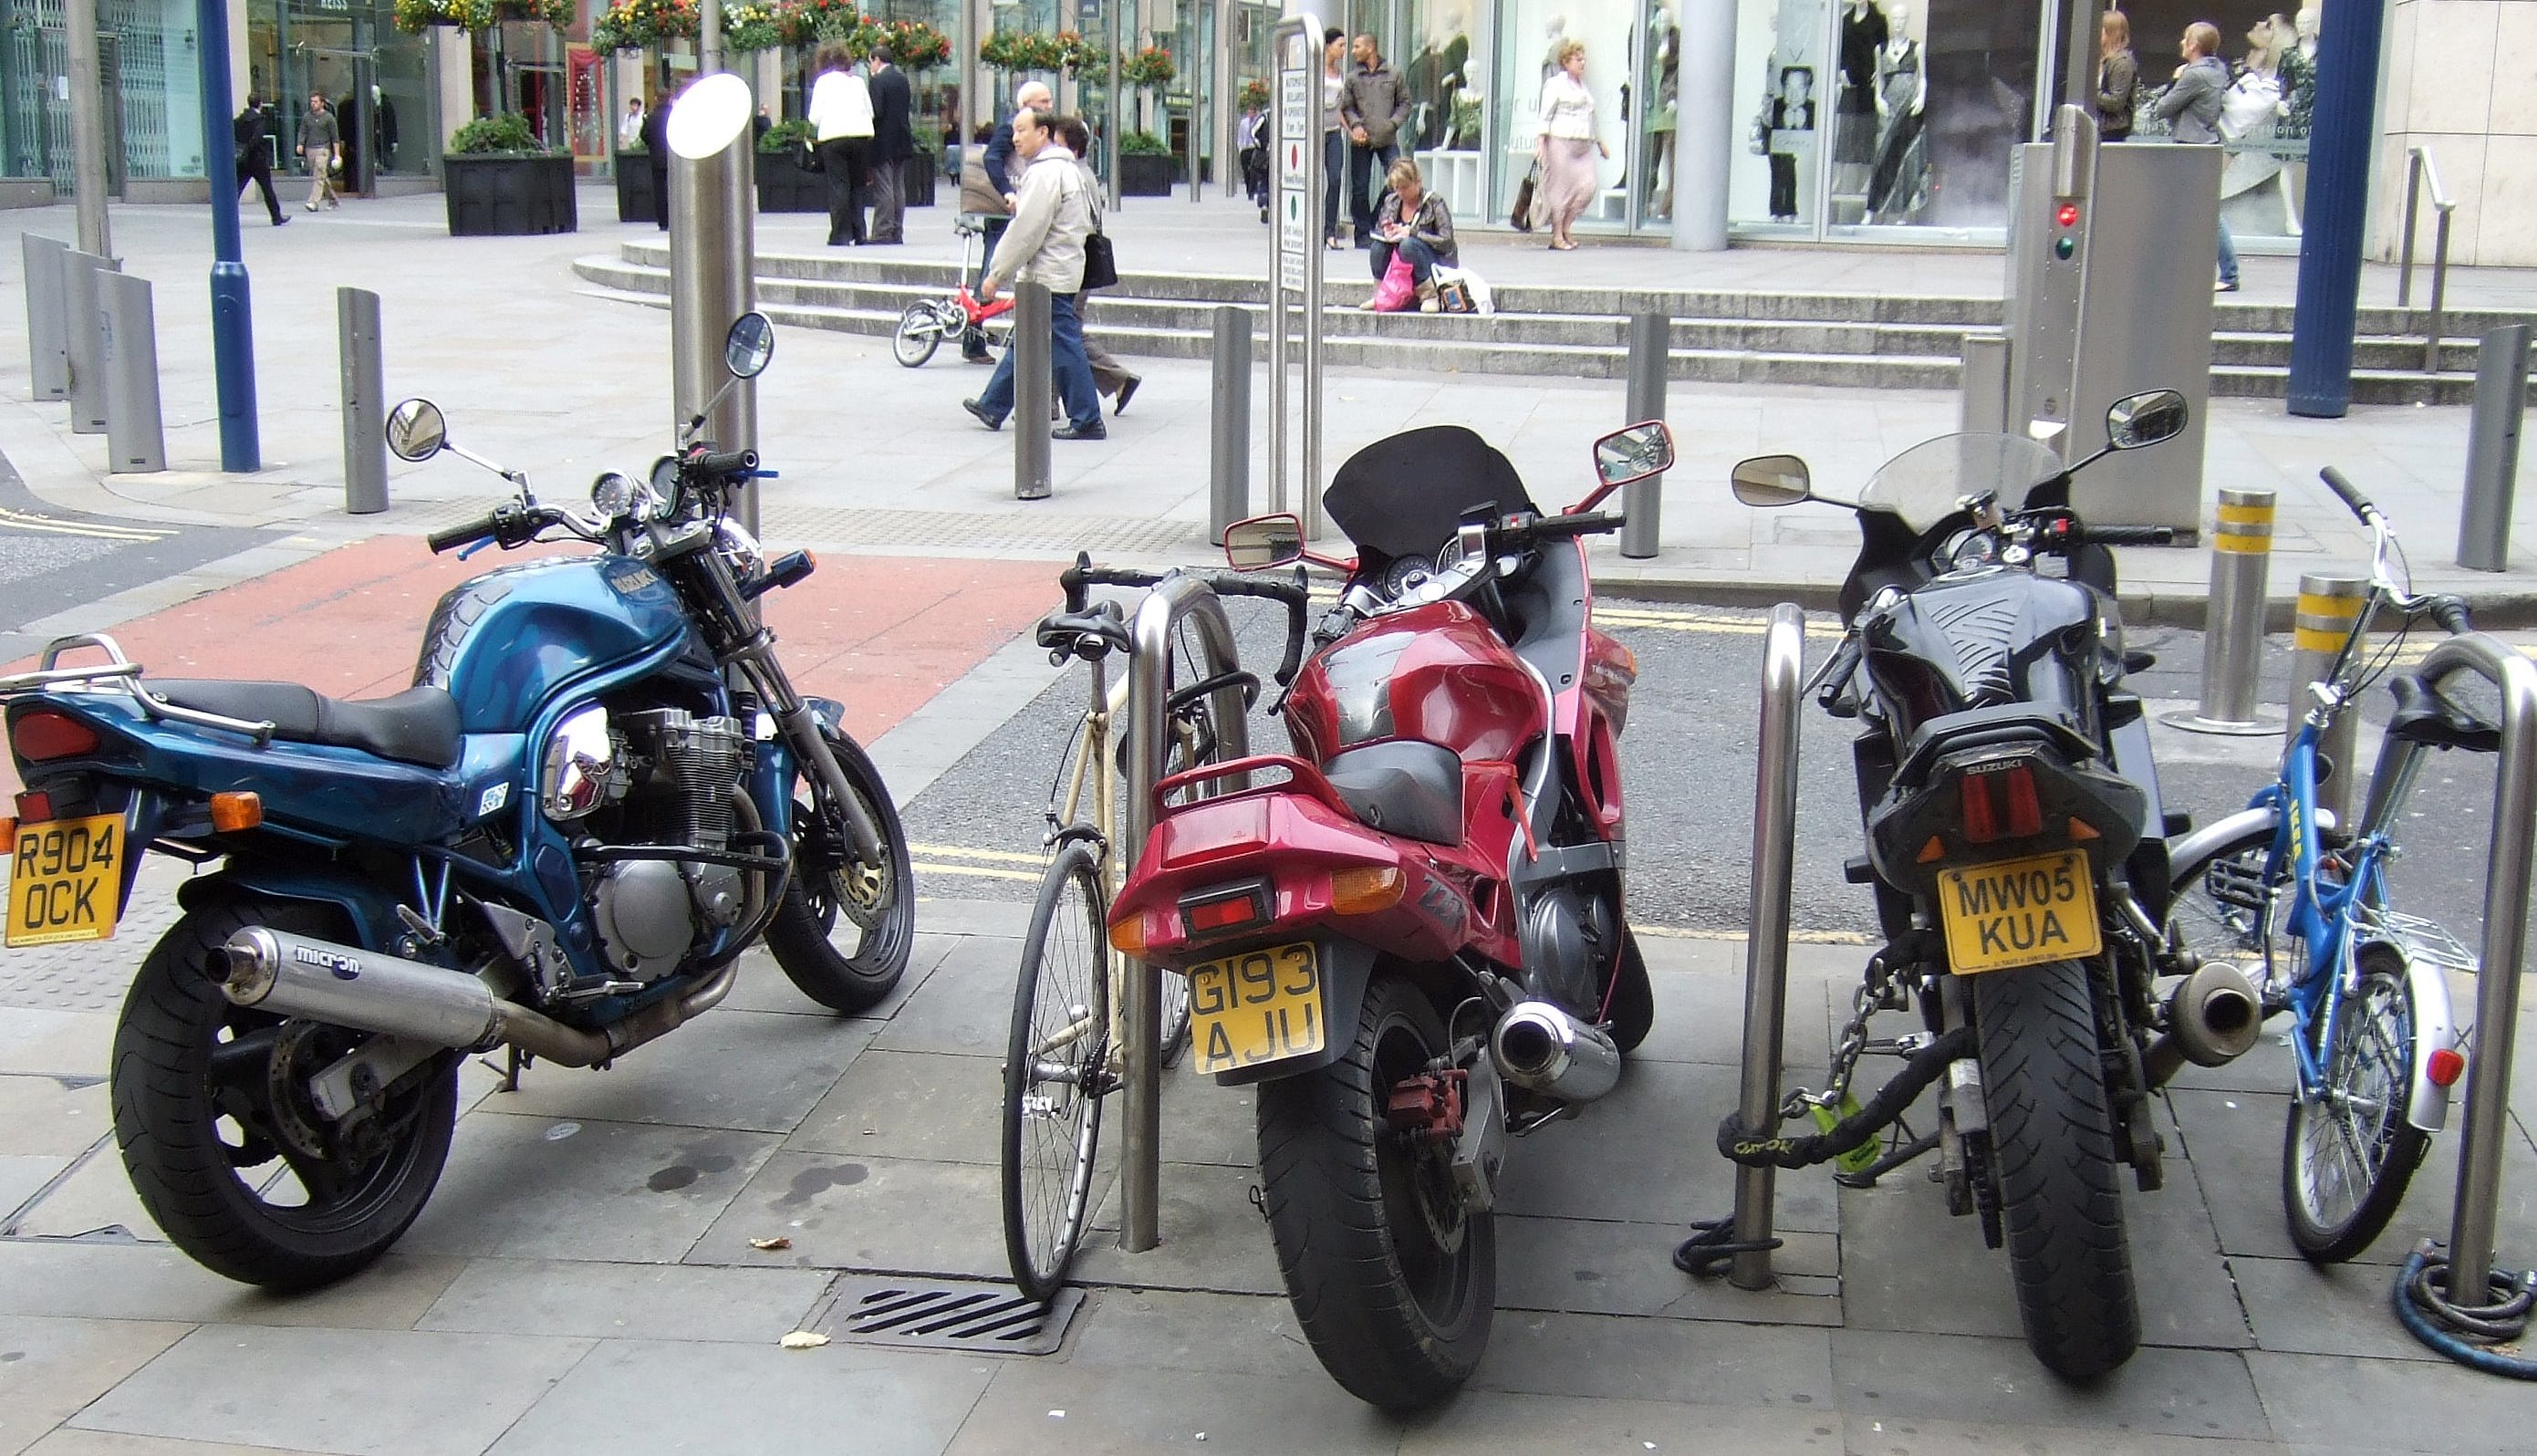 File:Motorcycle parking in Manchester.jpg - Wikimedia Commons